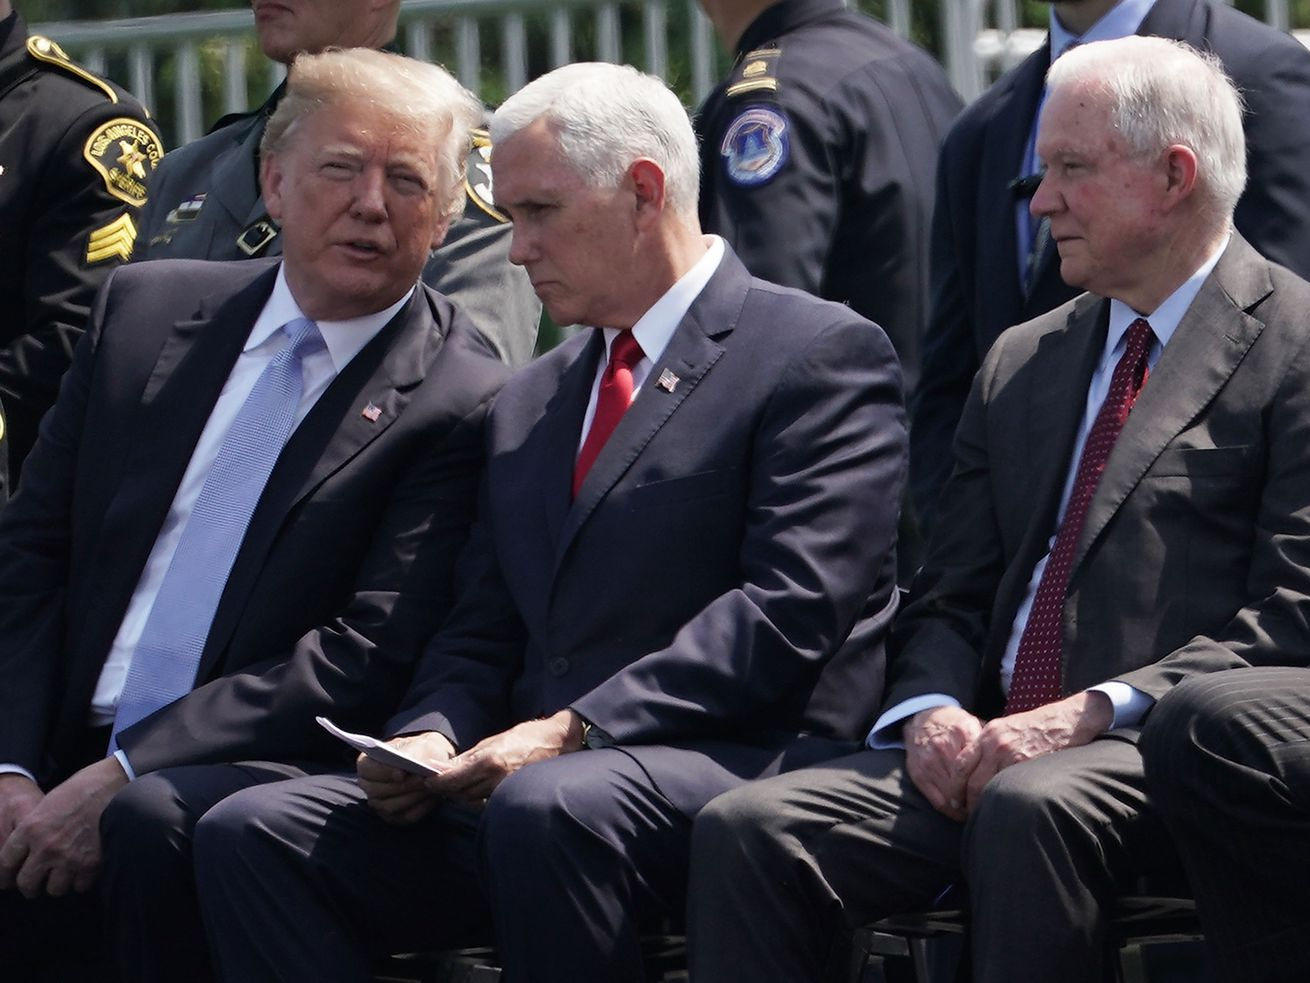 President Donald Trump, Vice President Mike Pence, and Attorney General Jeff Sessions attend the 37th Annual National Peace Officers' Memorial Service May 15, 2018.